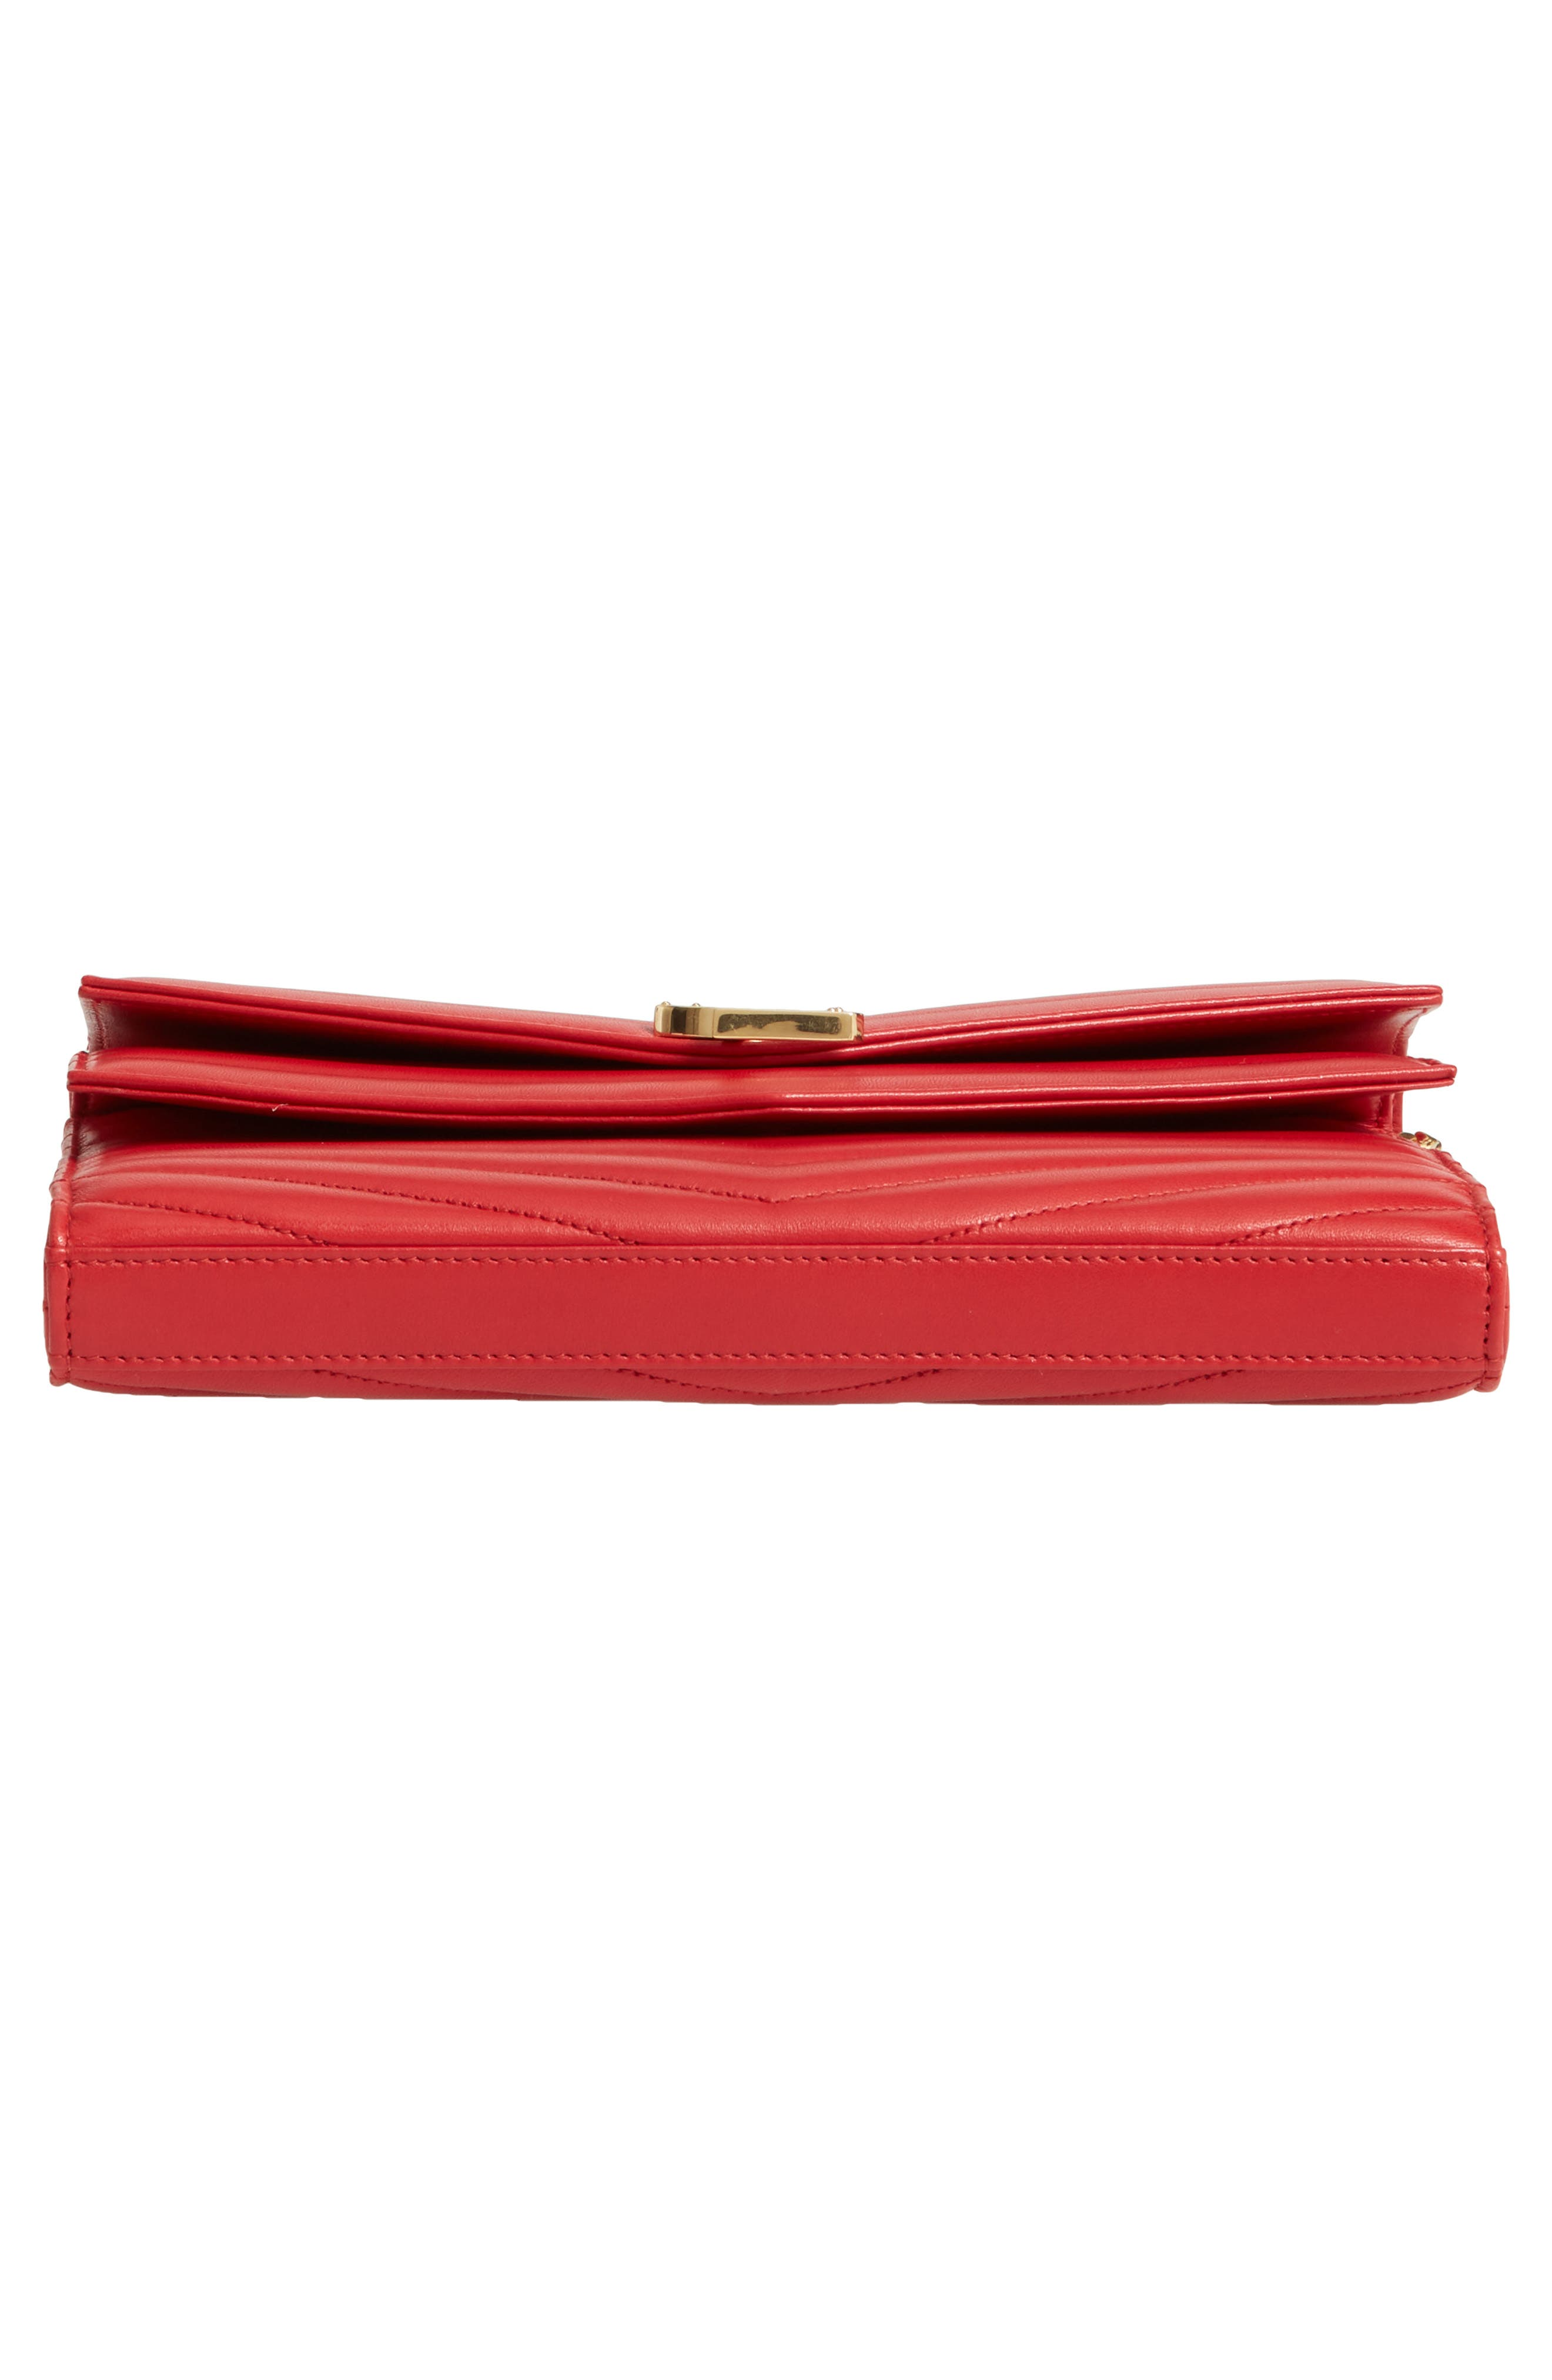 SAINT LAURENT, Sulpice Leather Crossbody Wallet, Alternate thumbnail 6, color, BANDANA RED